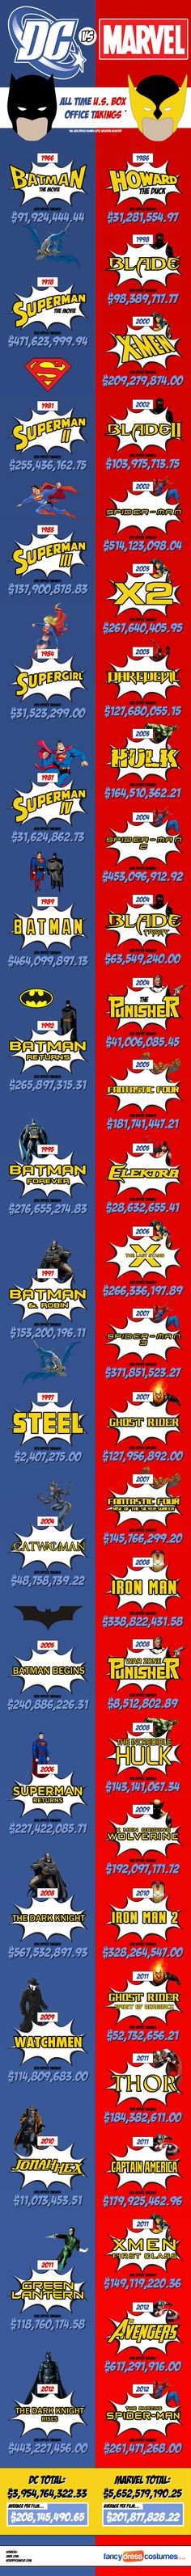 Marvel Vs DC infographic